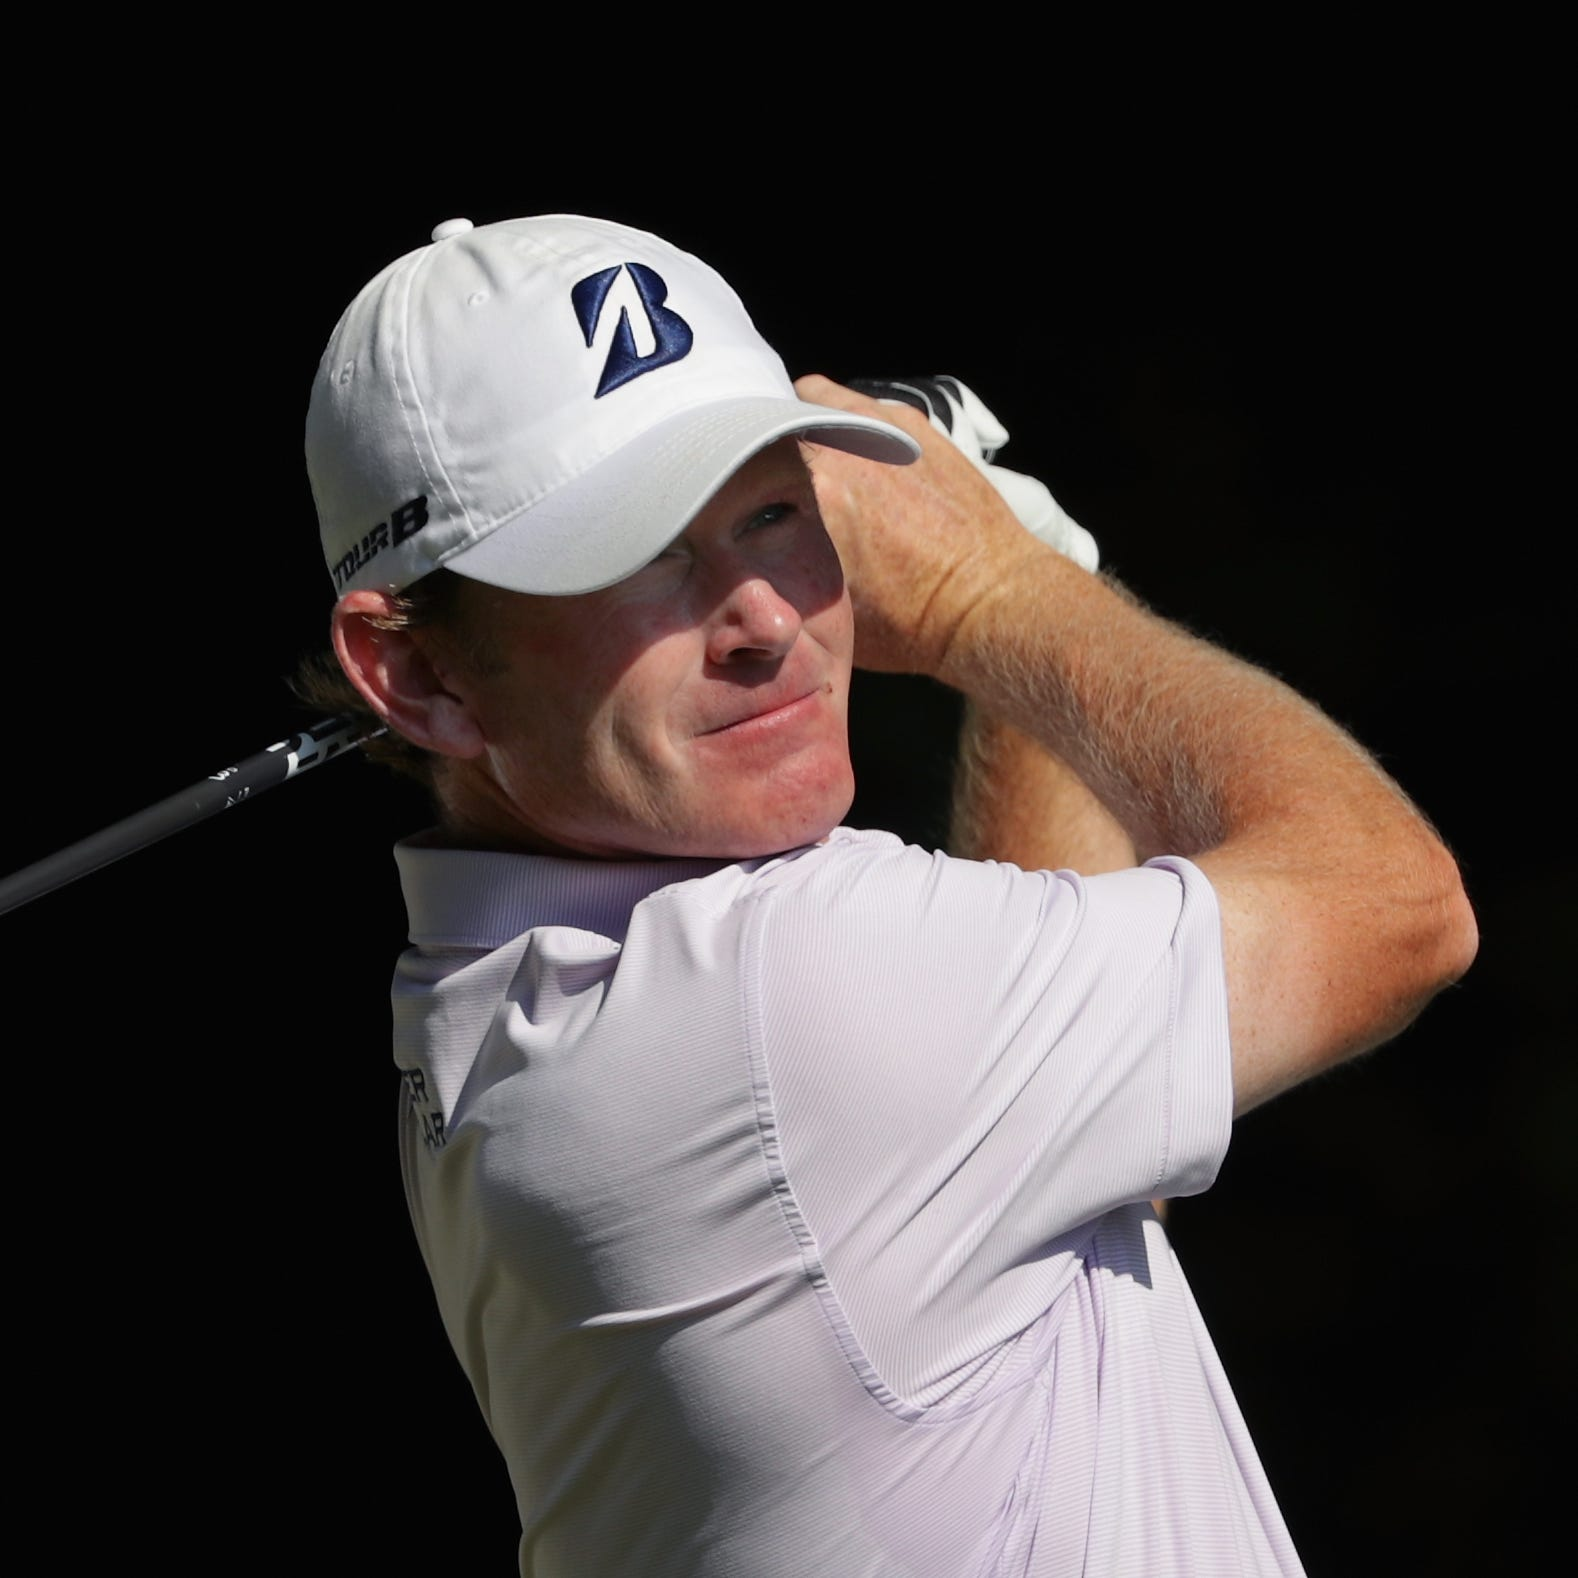 Brandt Snedeker shoots 10th sub-60 round in PGA Tour history at Wyndham Championship